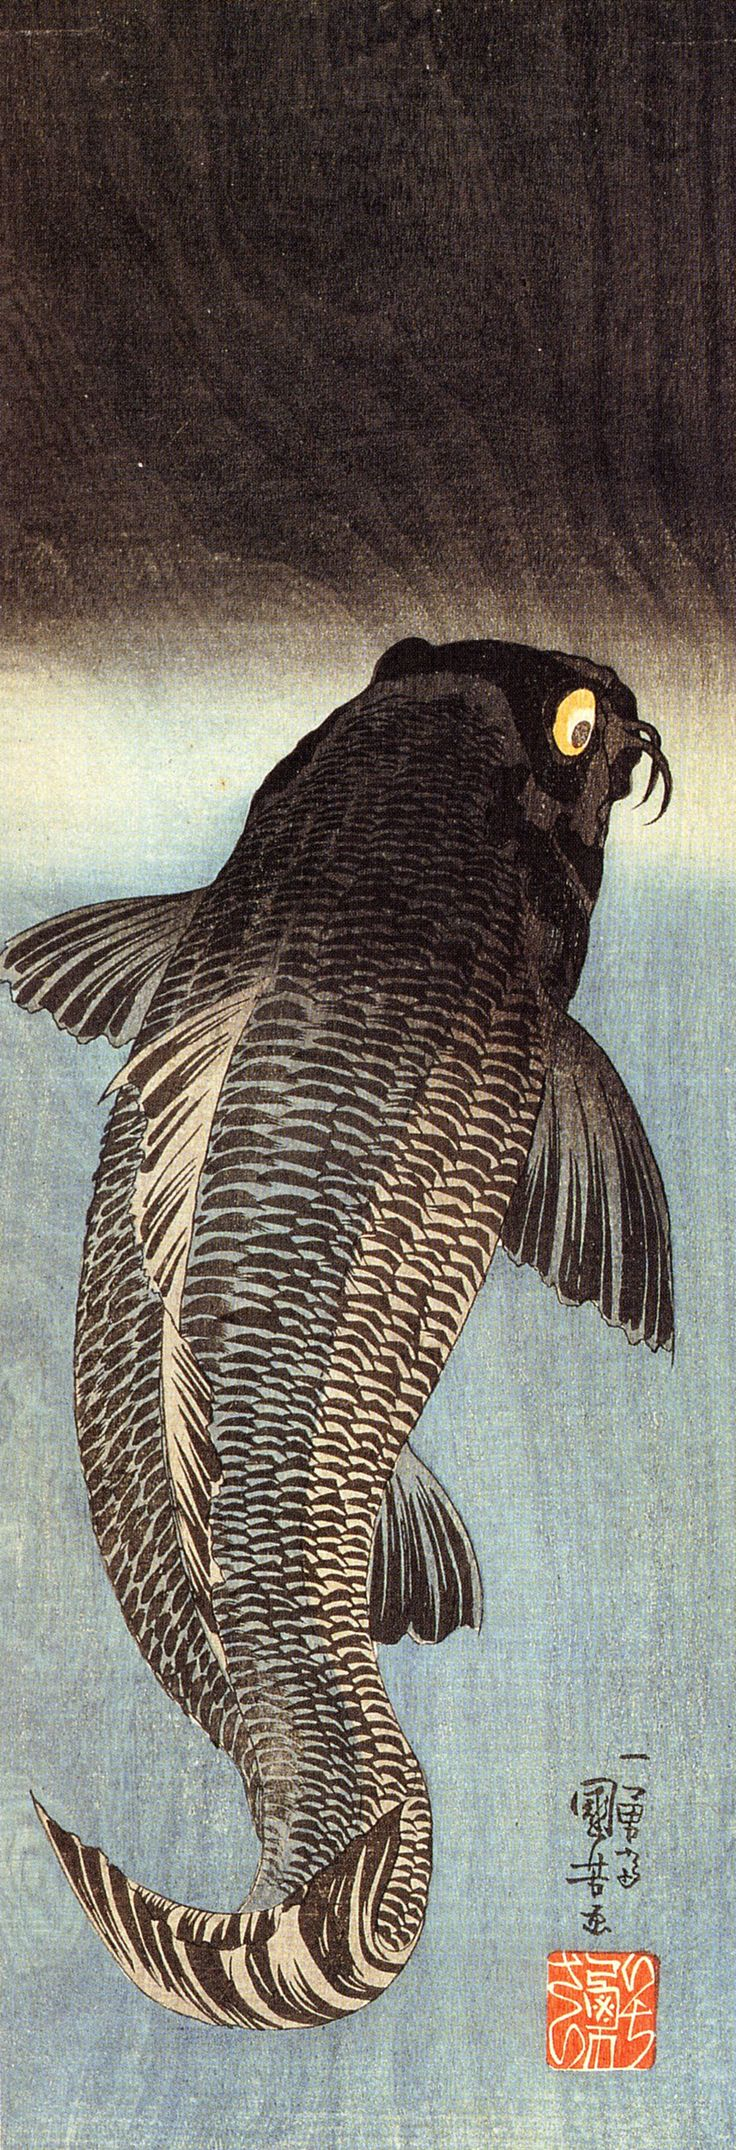 Black carp by Utagawa Kuniyoshi. Ukiyo-e style  Intorduce children to chinese art, create a granulated wash for background and use a sharpee for koi fish- each student can make their own stamp out of an eraser